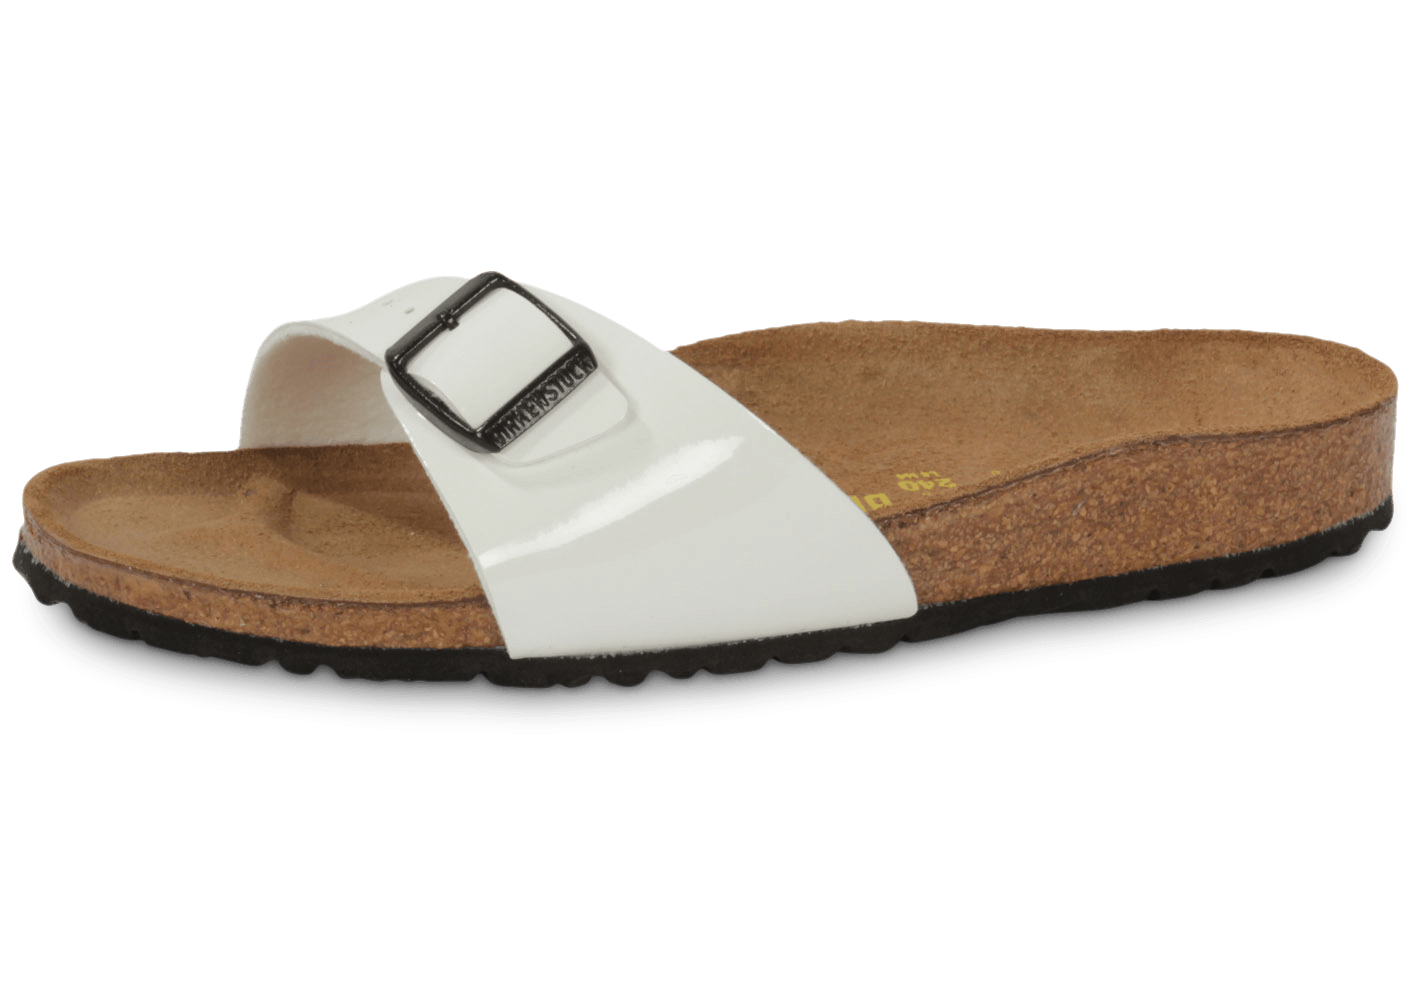 birkenstock madrid vernis blanc chaussures femme chausport. Black Bedroom Furniture Sets. Home Design Ideas